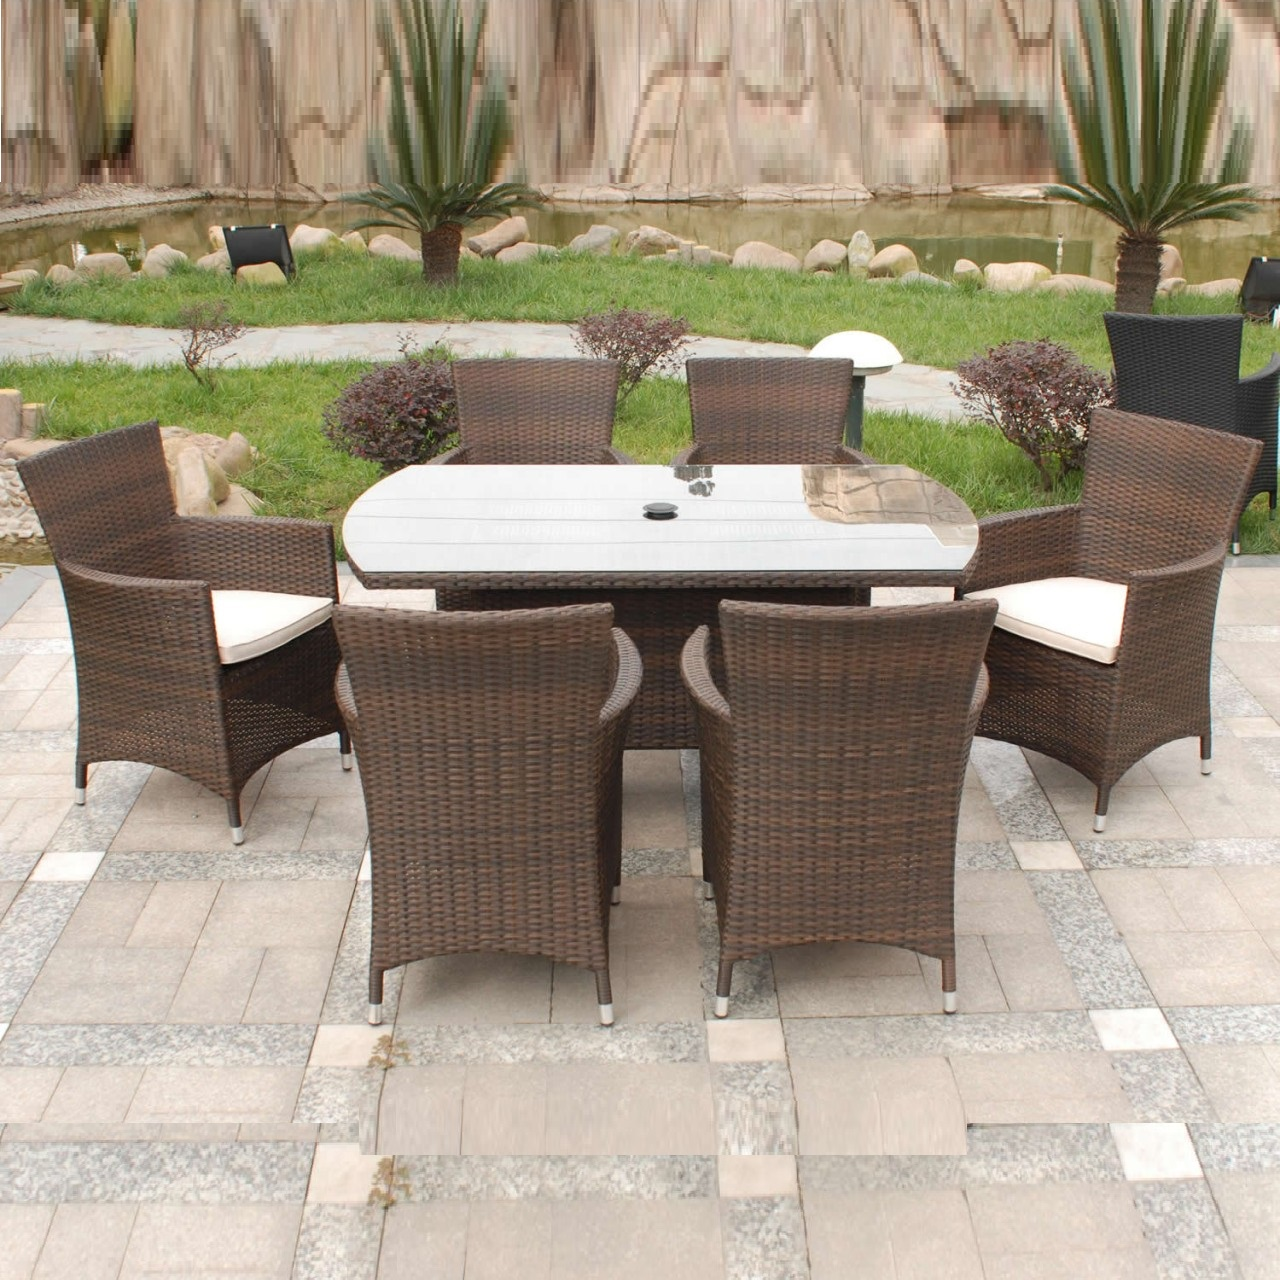 https://www.firstfurniture.co.uk/pub/media/catalog/product/c/a/cannes-brown-rectangle-set.jpg